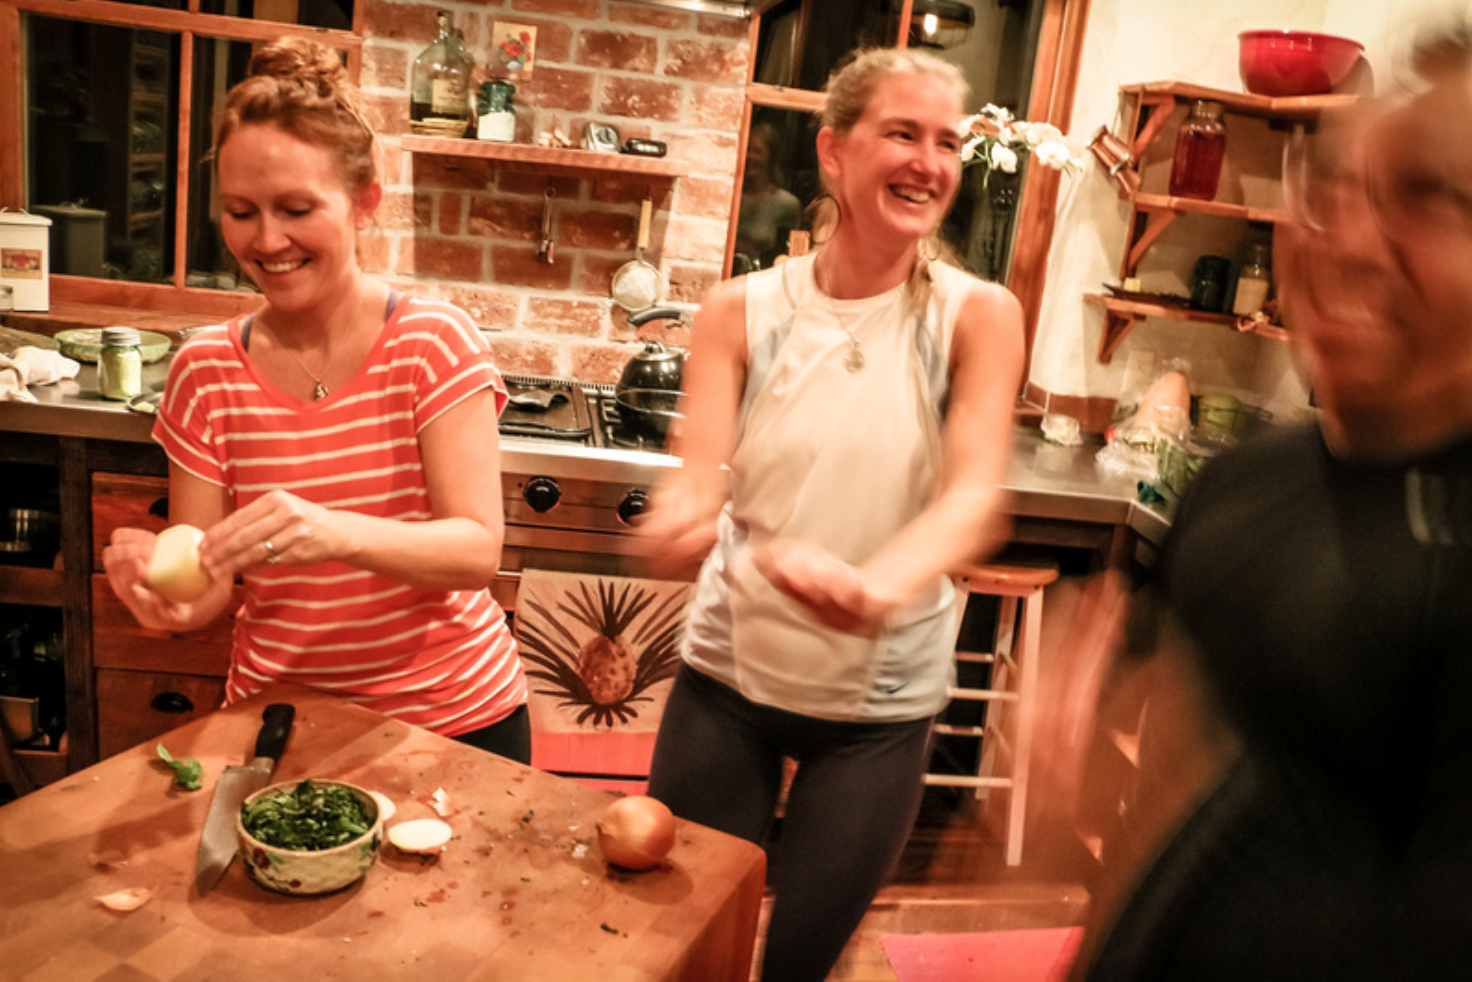 Retreat guests at the YogaFarm making dinner (and dancing)  in the kitchen [photo: Raku Loren]